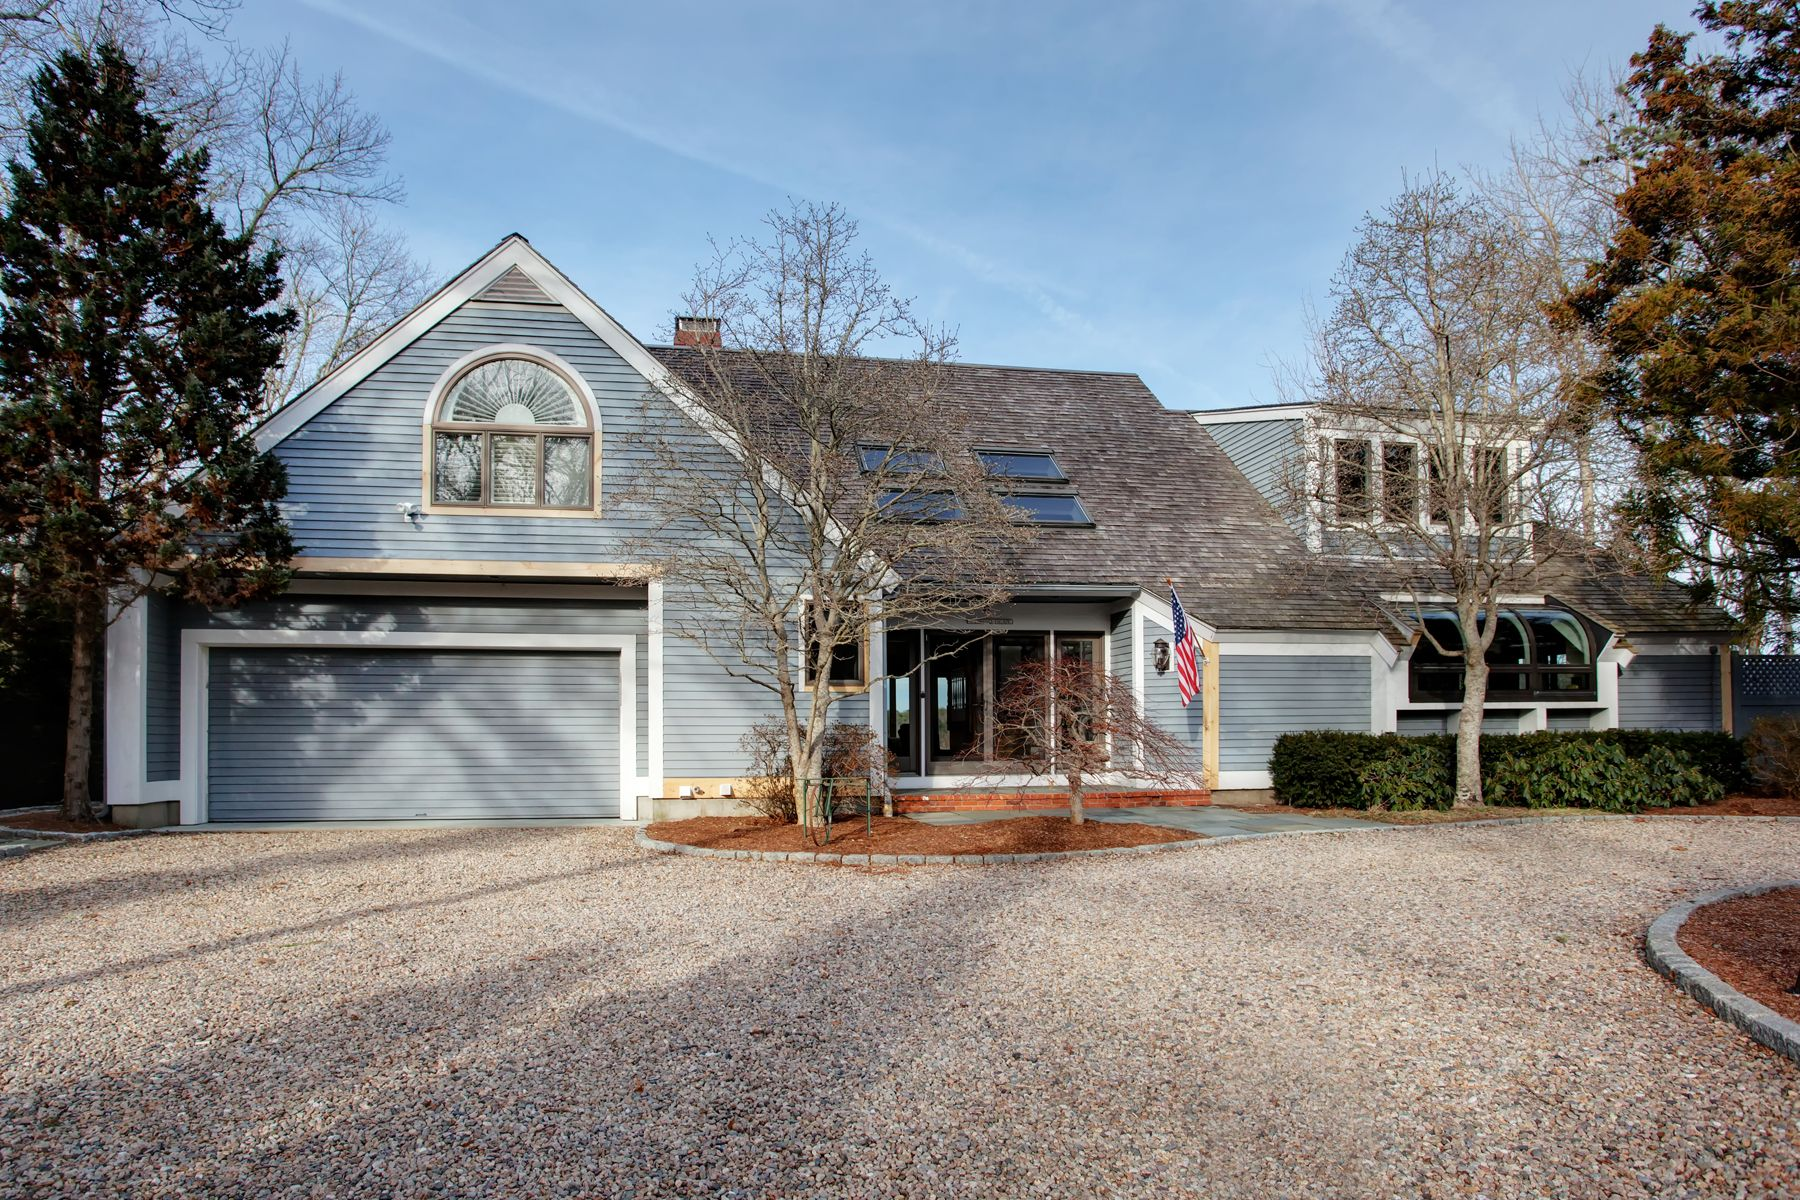 Single Family Home for Active at 43 Tide Run, Mashpee 43 Tide Run Mashpee, Massachusetts 02649 United States